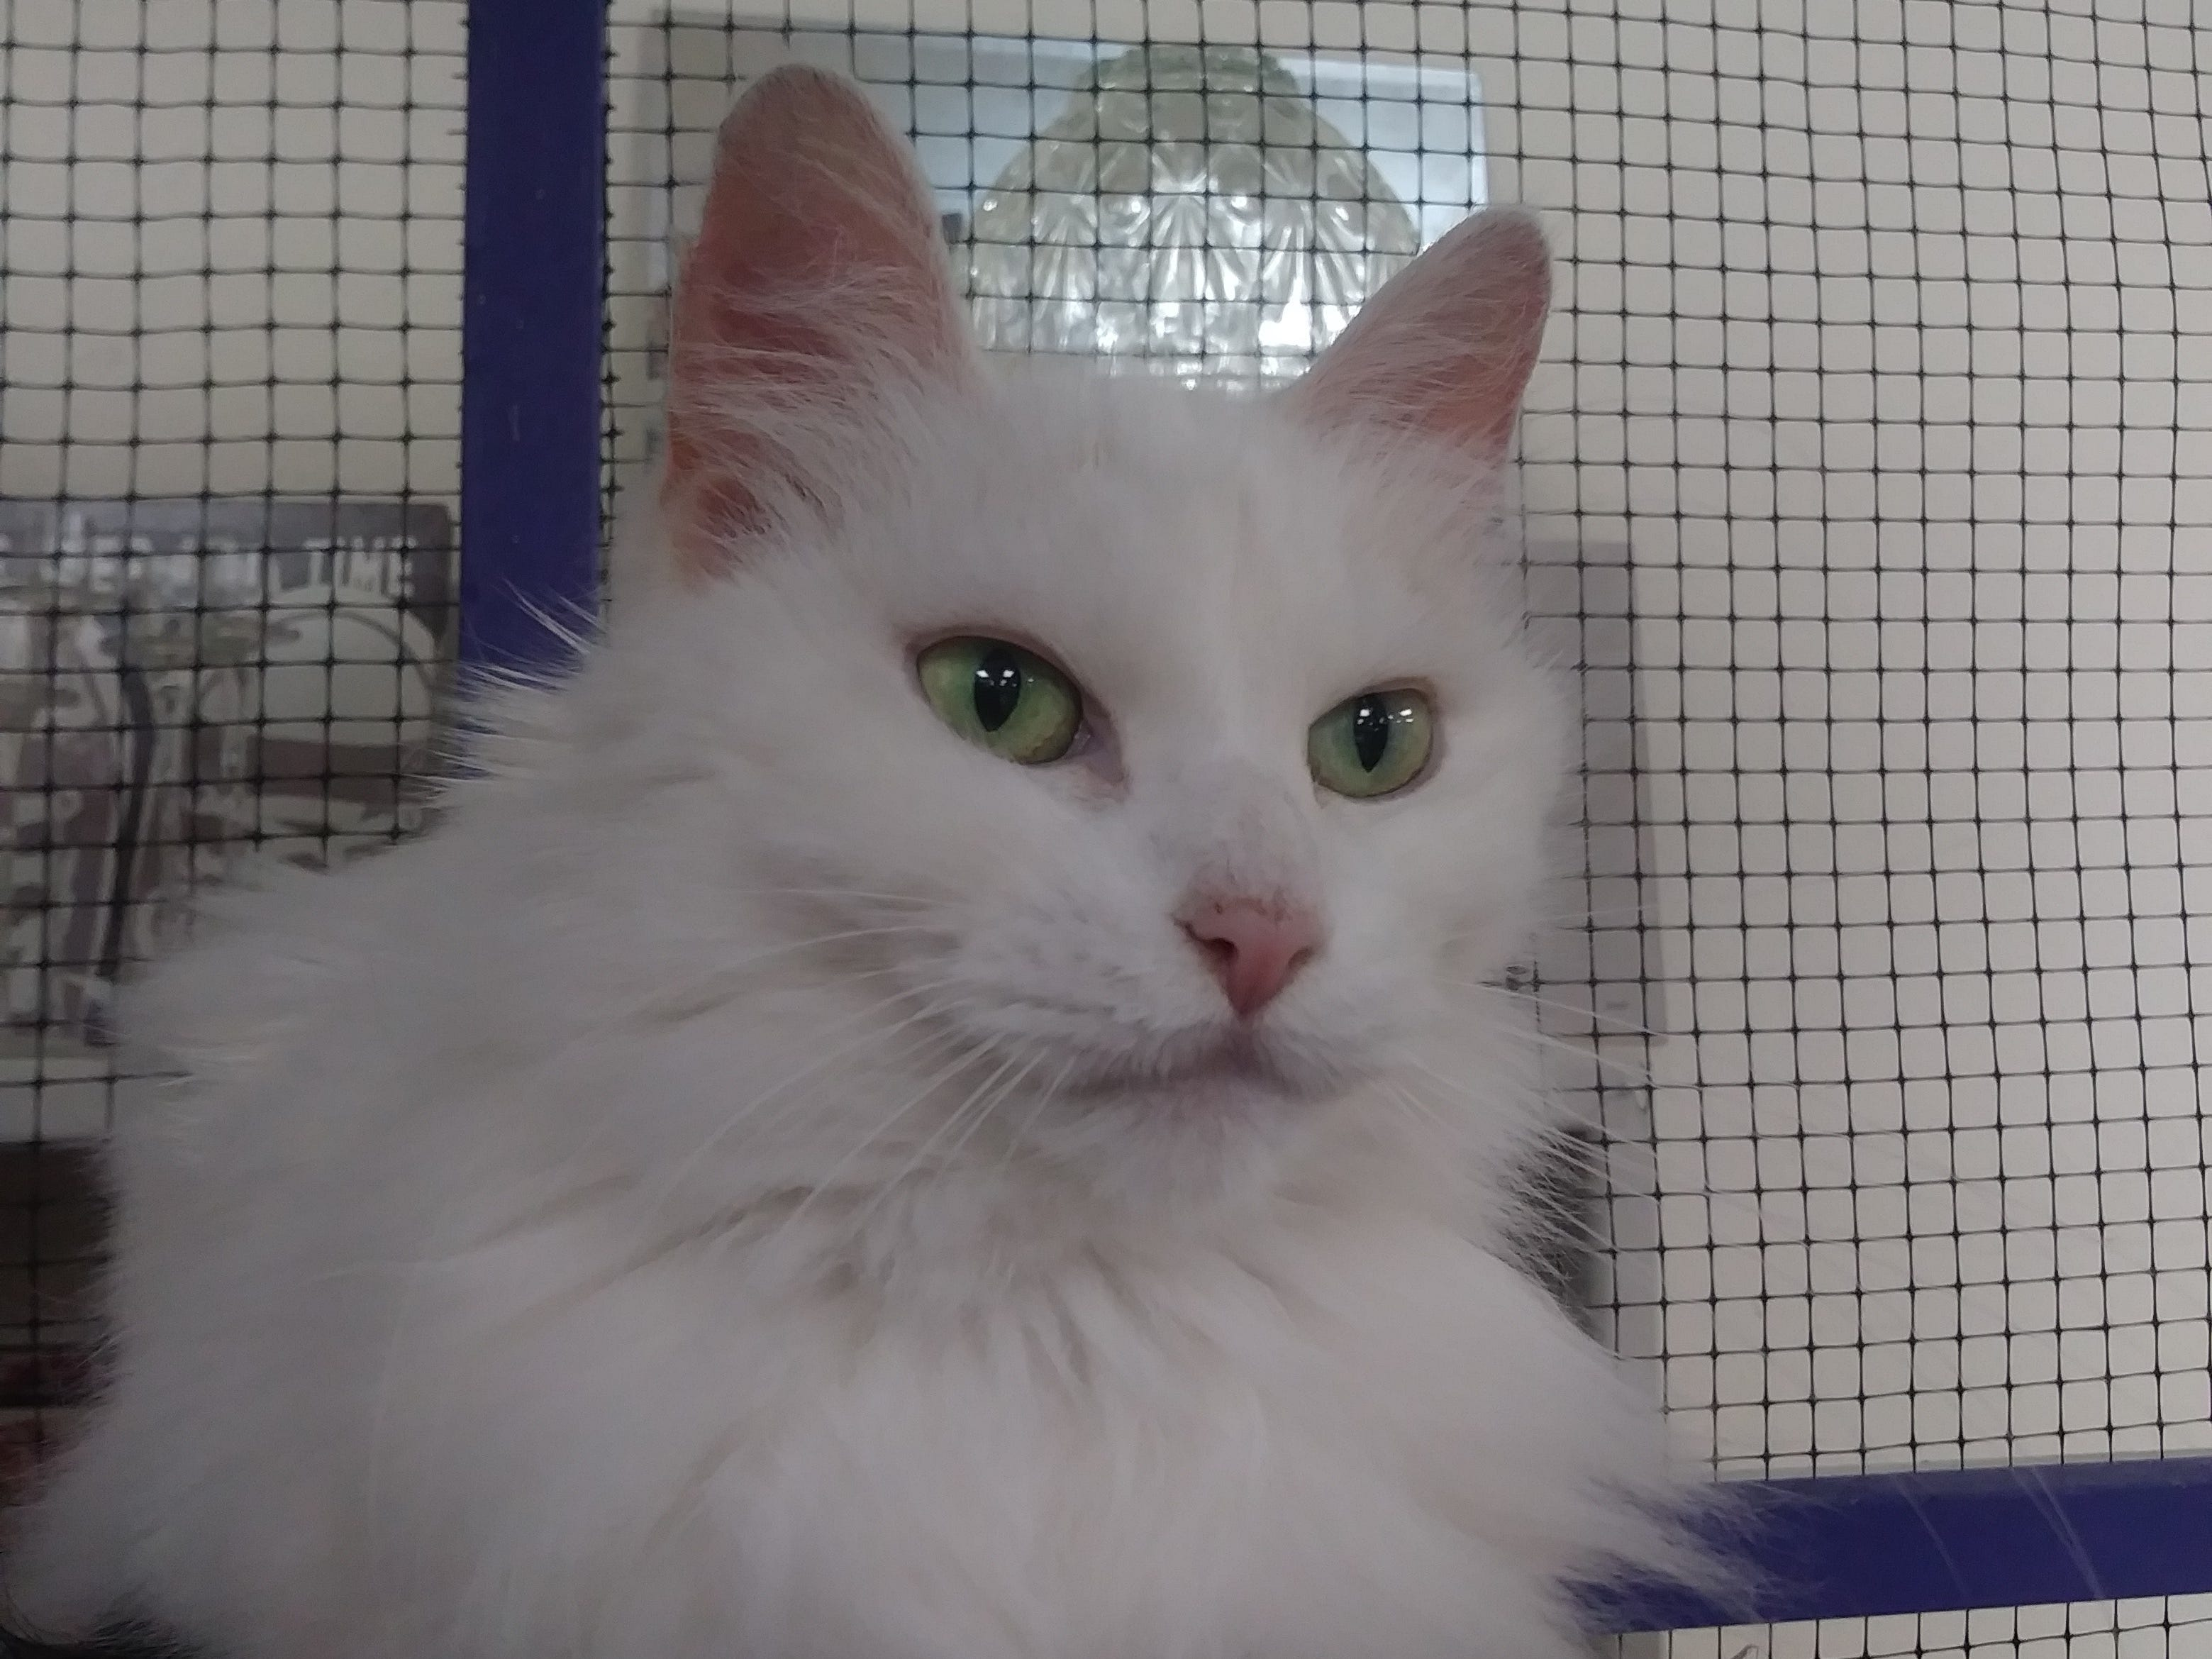 Princess is a tri-colored female cat who is very calm and gets along well with other cats. Email Spay Neuter and Protect at Snap.spayneuterandprotect@gmail.com. Call 209-6966.